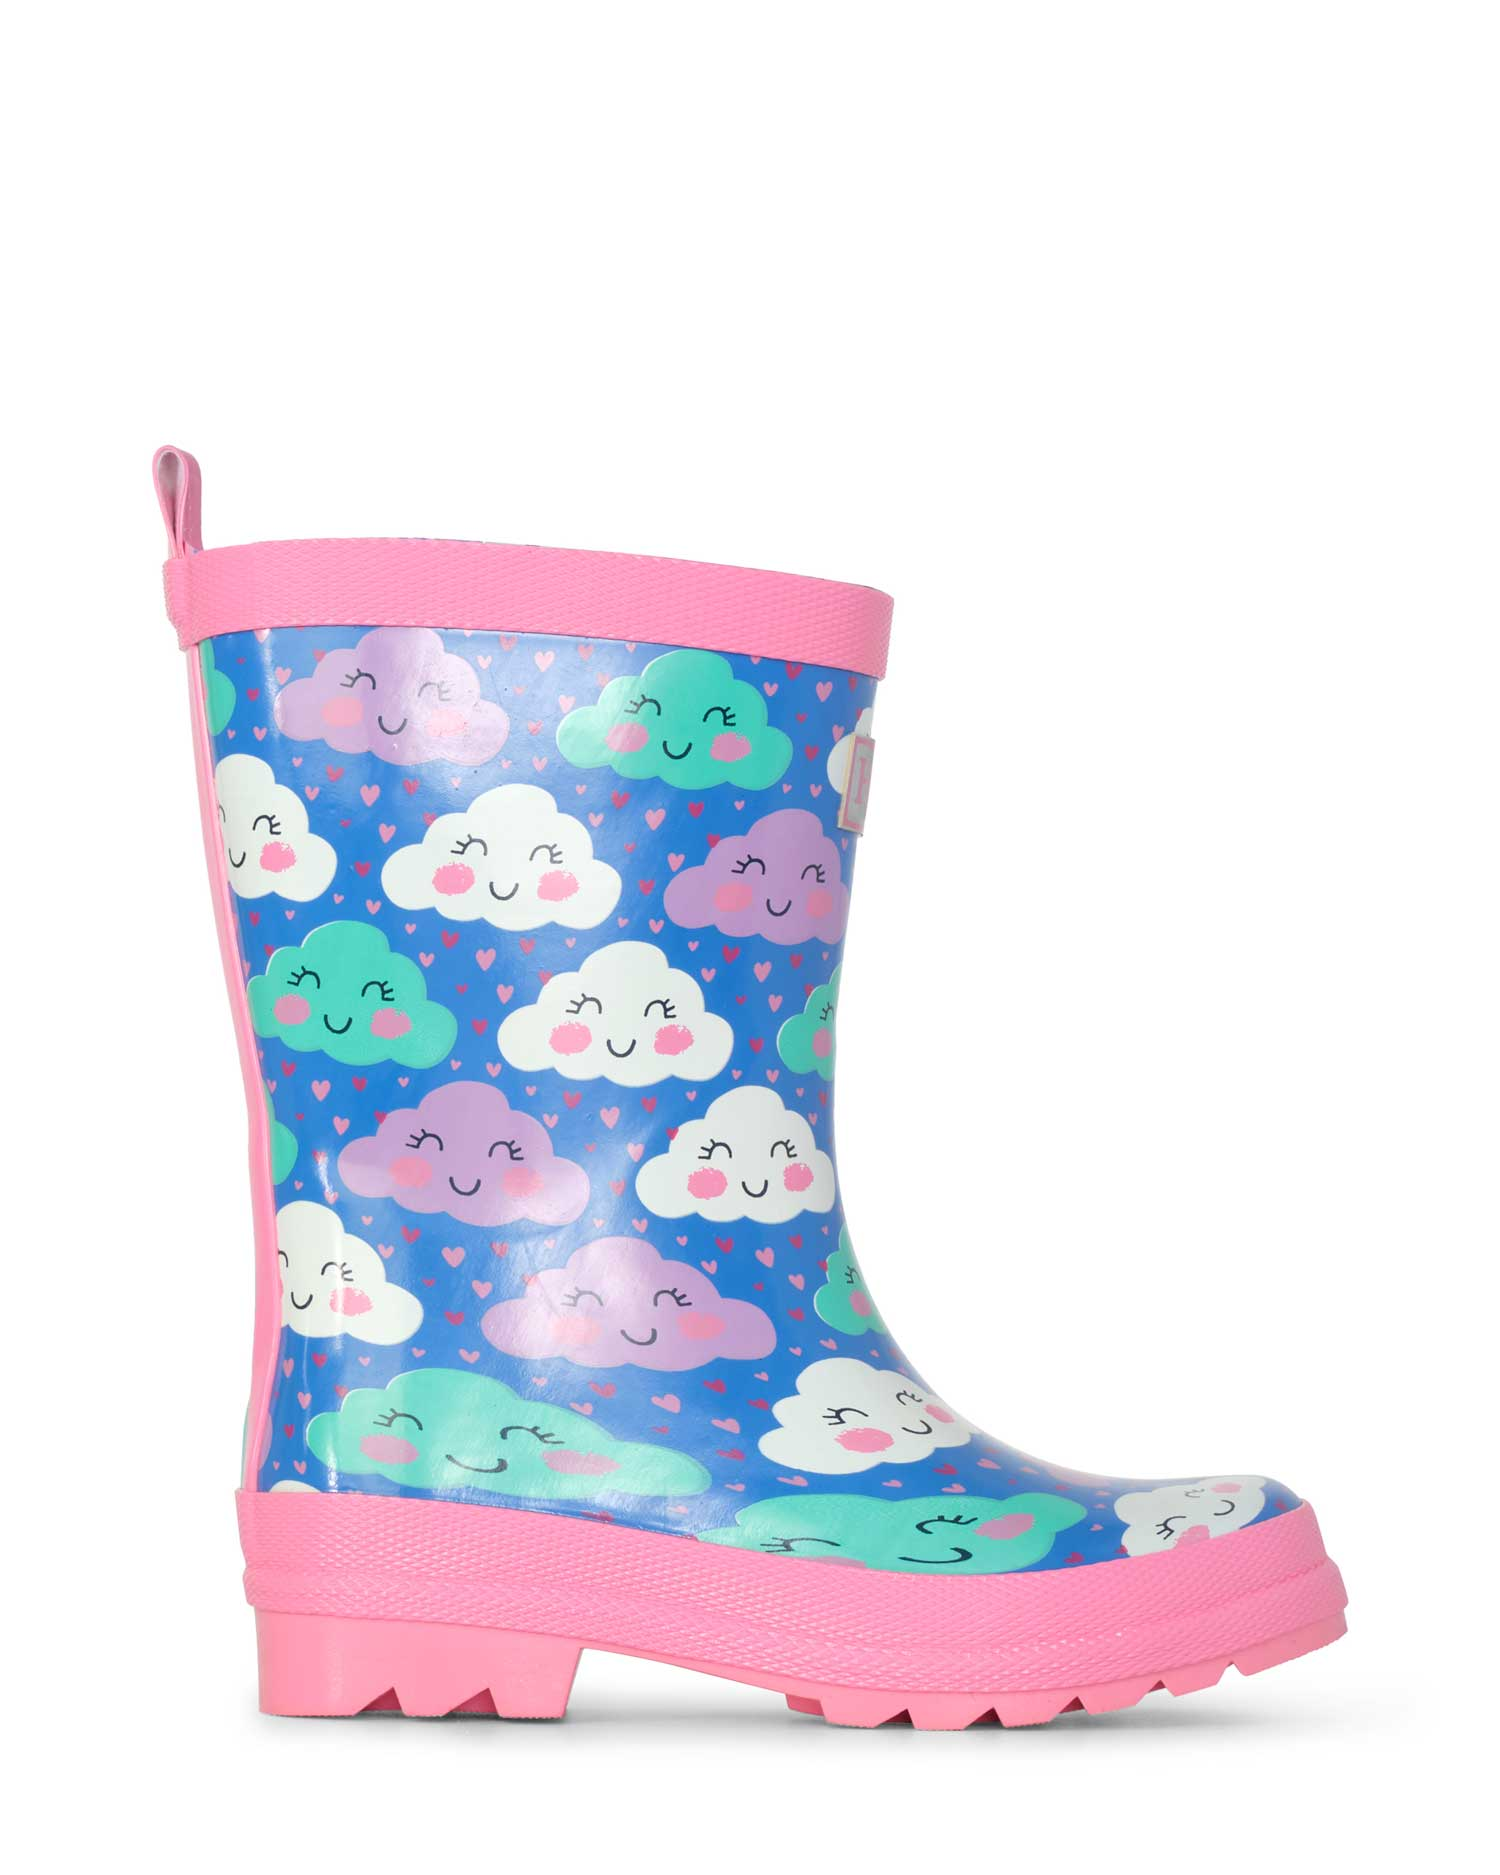 Cheerful Clouds Shiny Gumboots